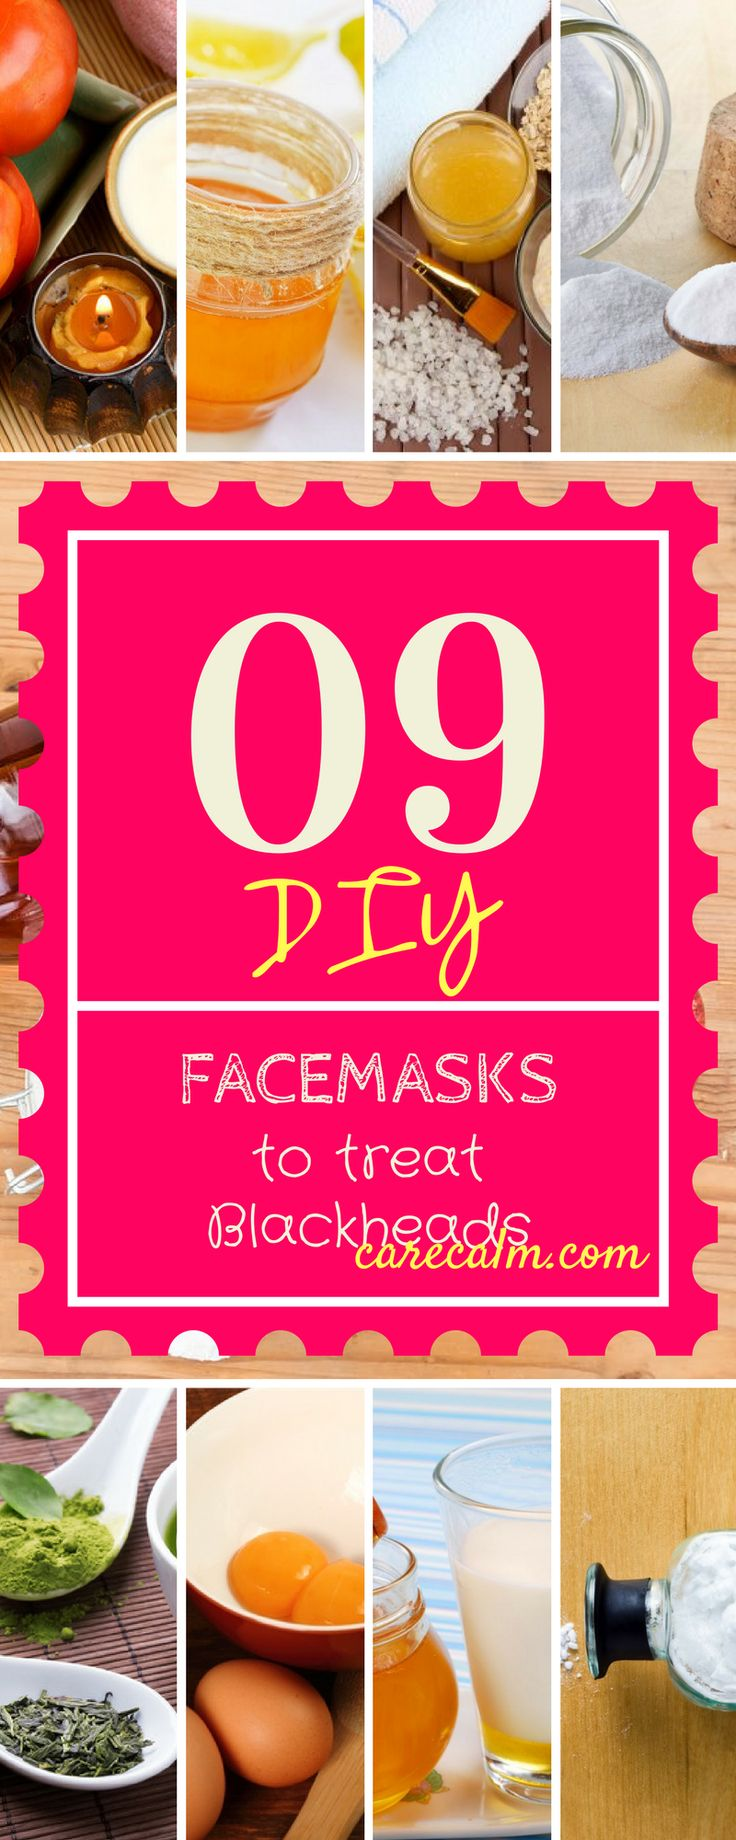 How To Get Rid of Blackheads? How to Treat Blackheads Overnight? What are blackheads? Where can you get a blackhead or a pimple?Find more at carecalm.com